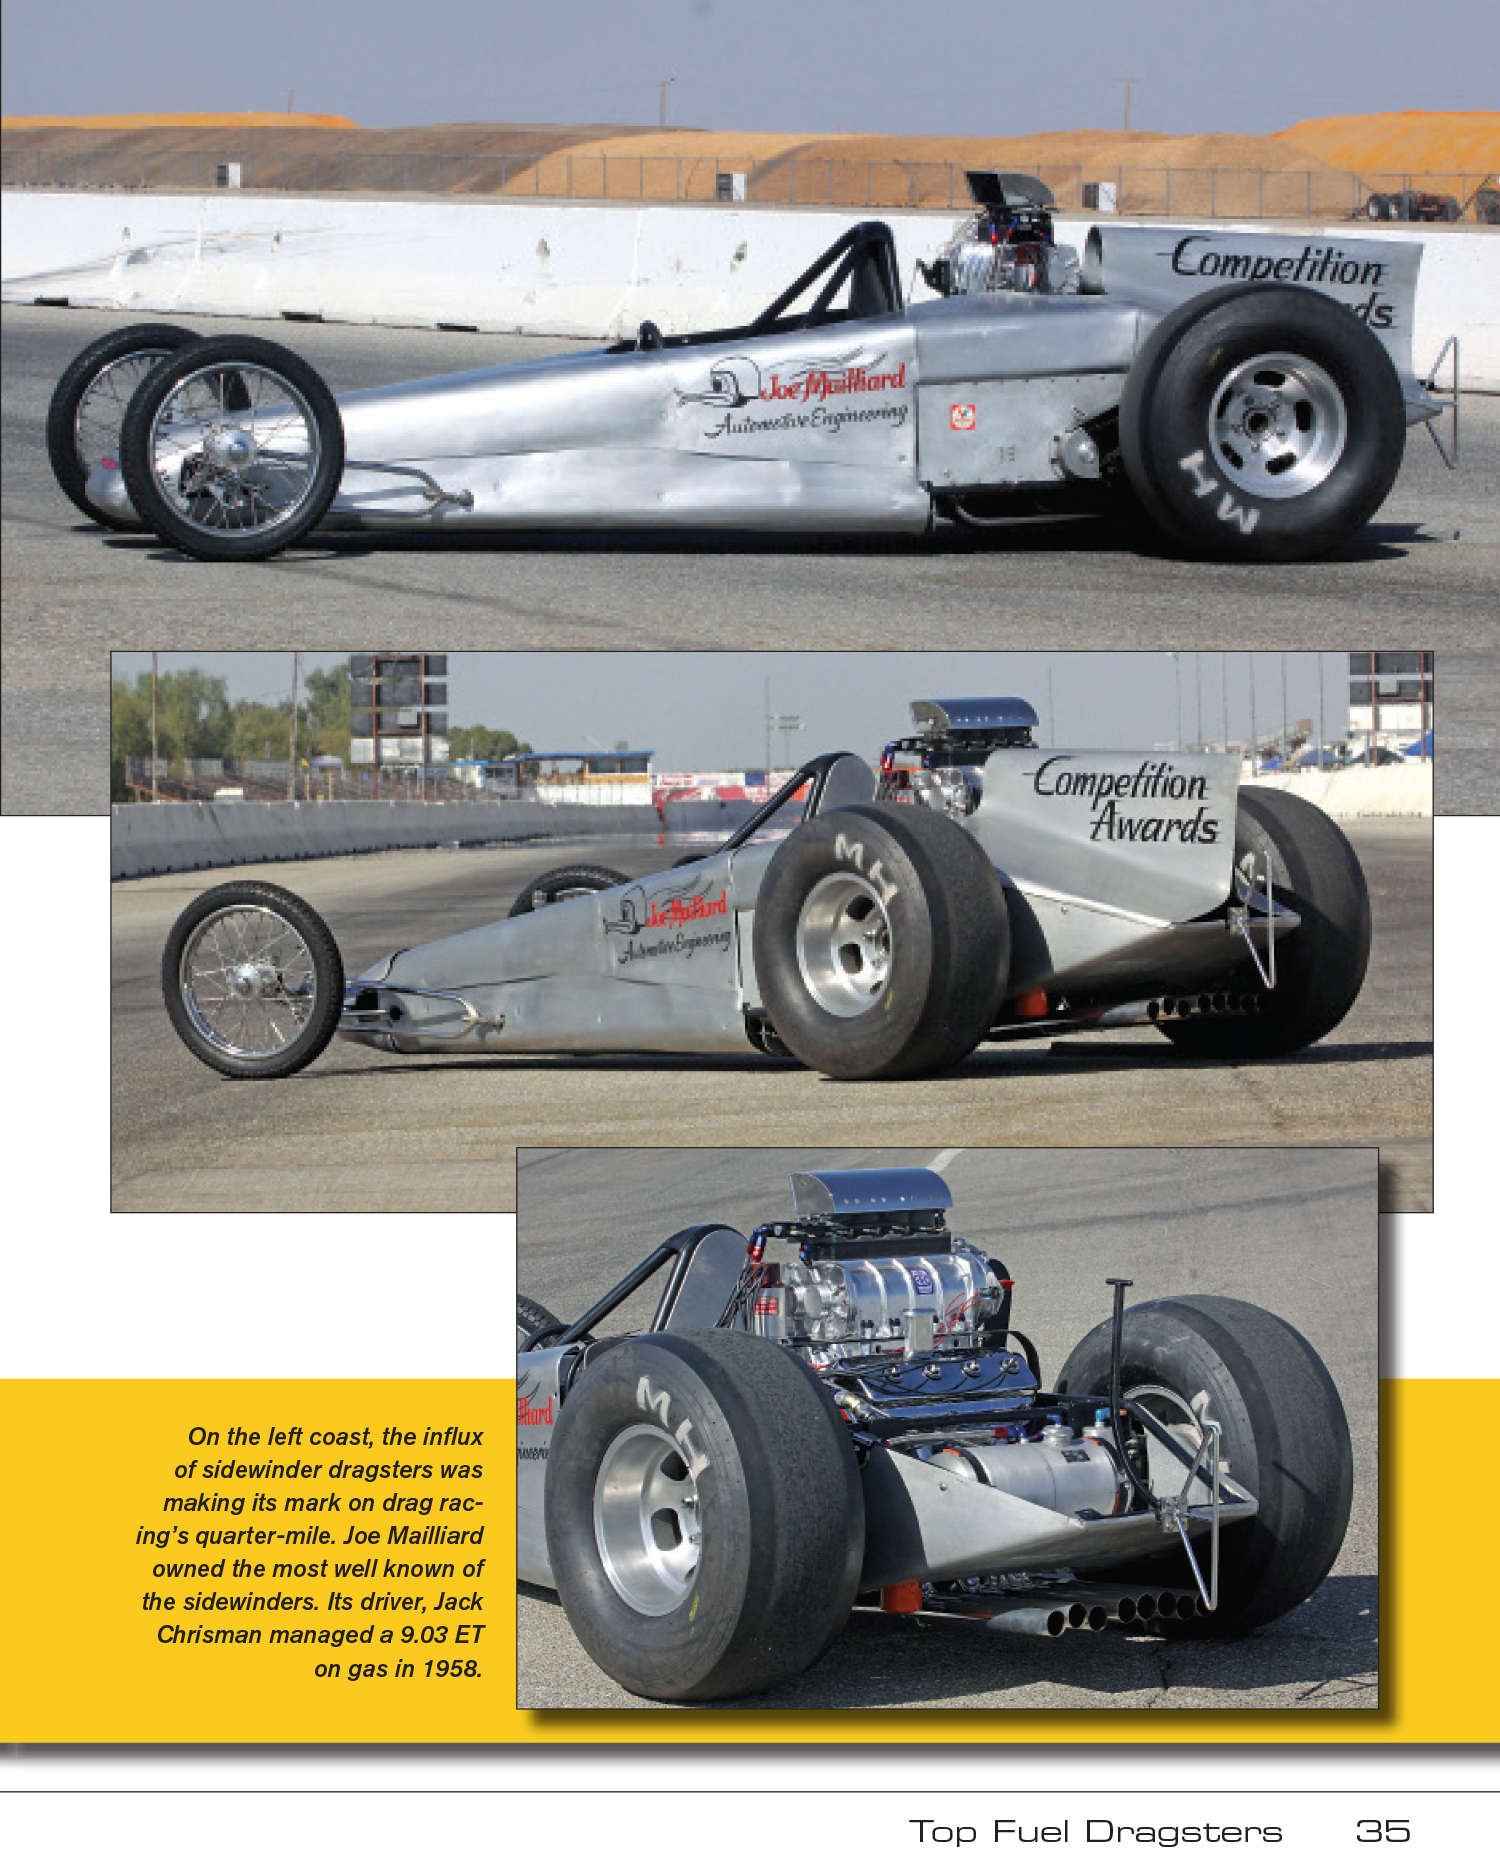 Details about Top Fuel Dragsters: Drag Racing'S Rear-Engine Revolution